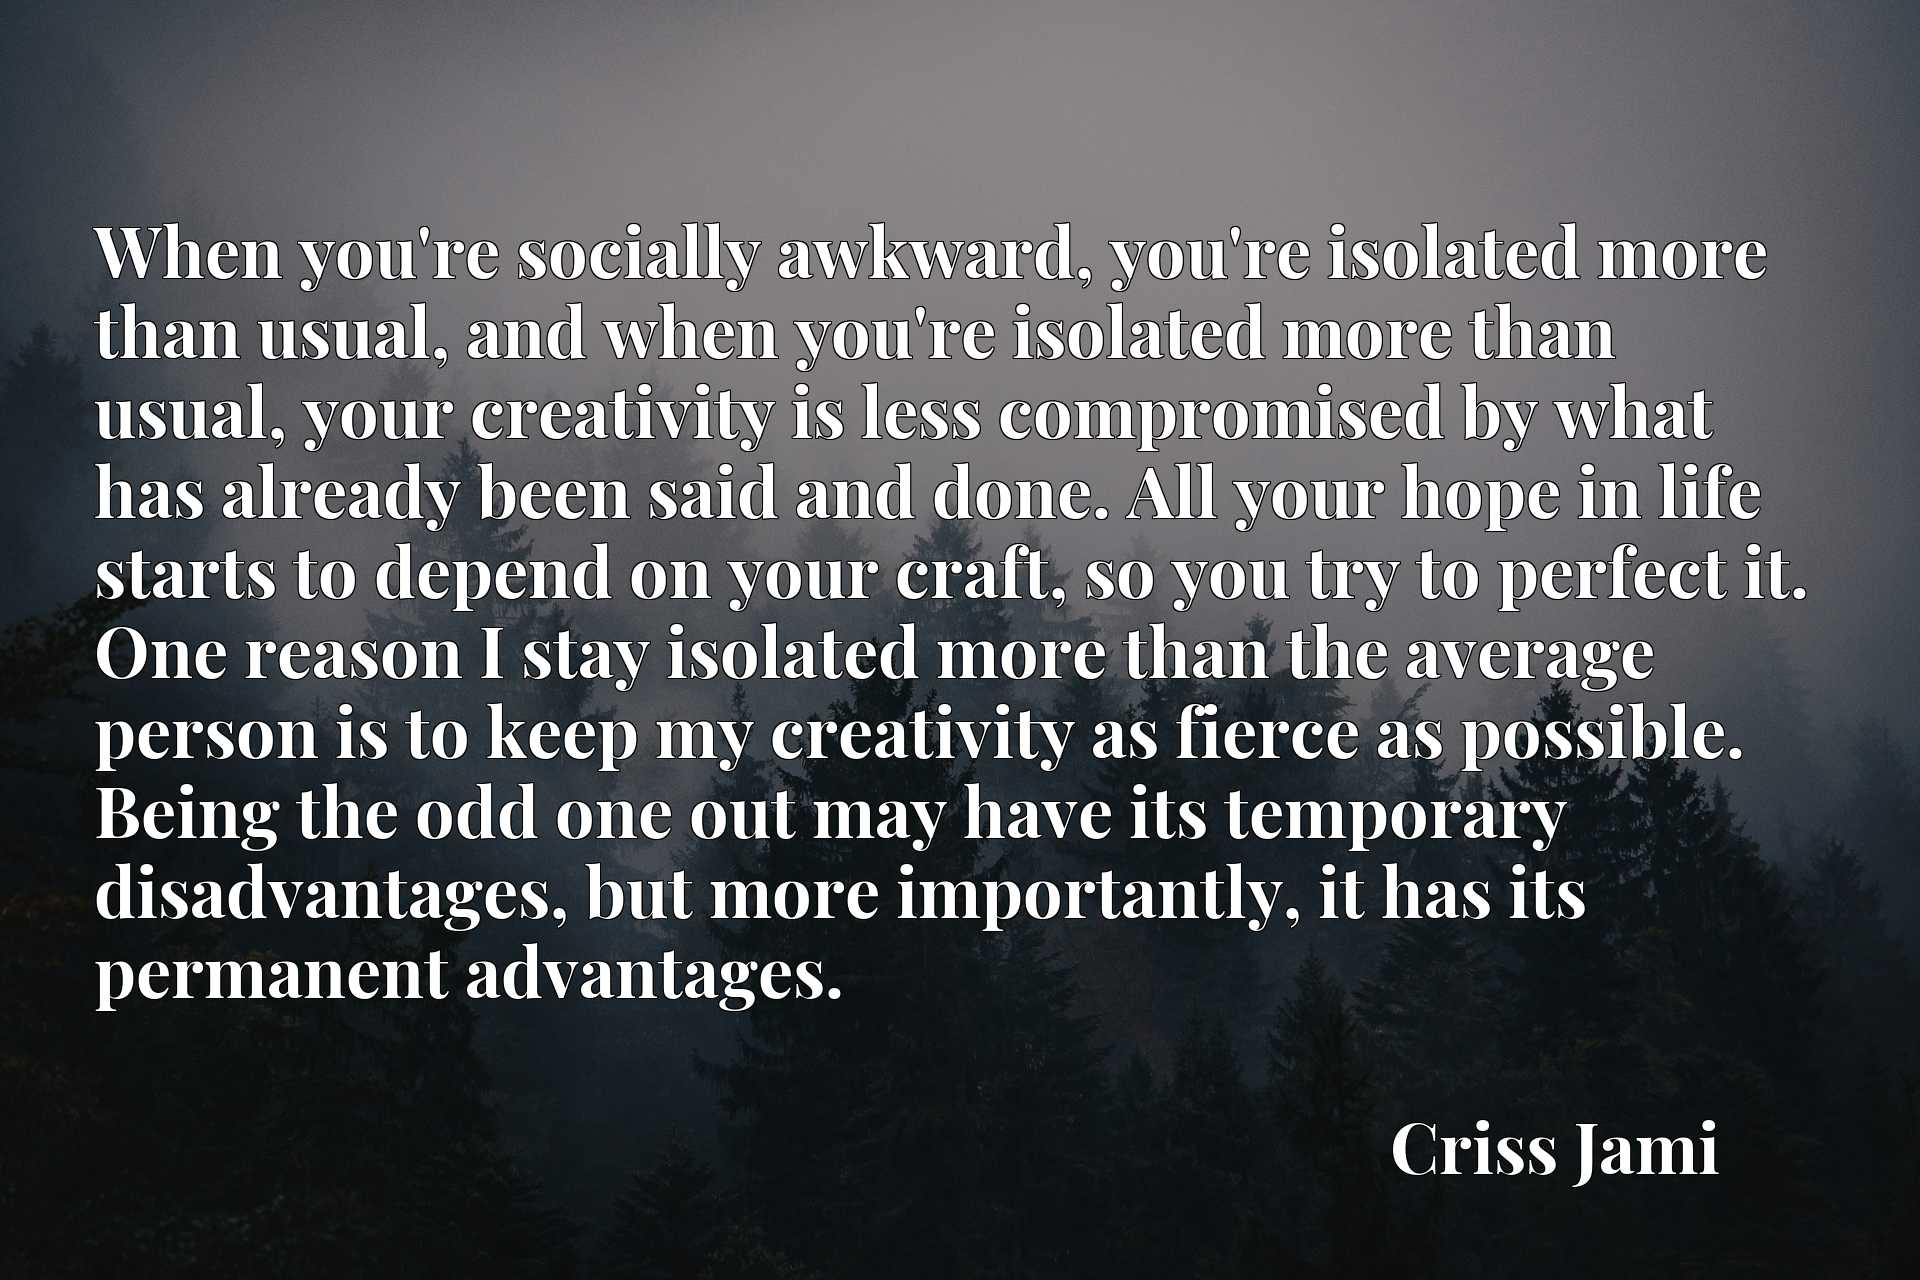 When you're socially awkward, you're isolated more than usual, and when you're isolated more than usual, your creativity is less compromised by what has already been said and done. All your hope in life starts to depend on your craft, so you try to perfect it. One reason I stay isolated more than the average person is to keep my creativity as fierce as possible. Being the odd one out may have its temporary disadvantages, but more importantly, it has its permanent advantages.